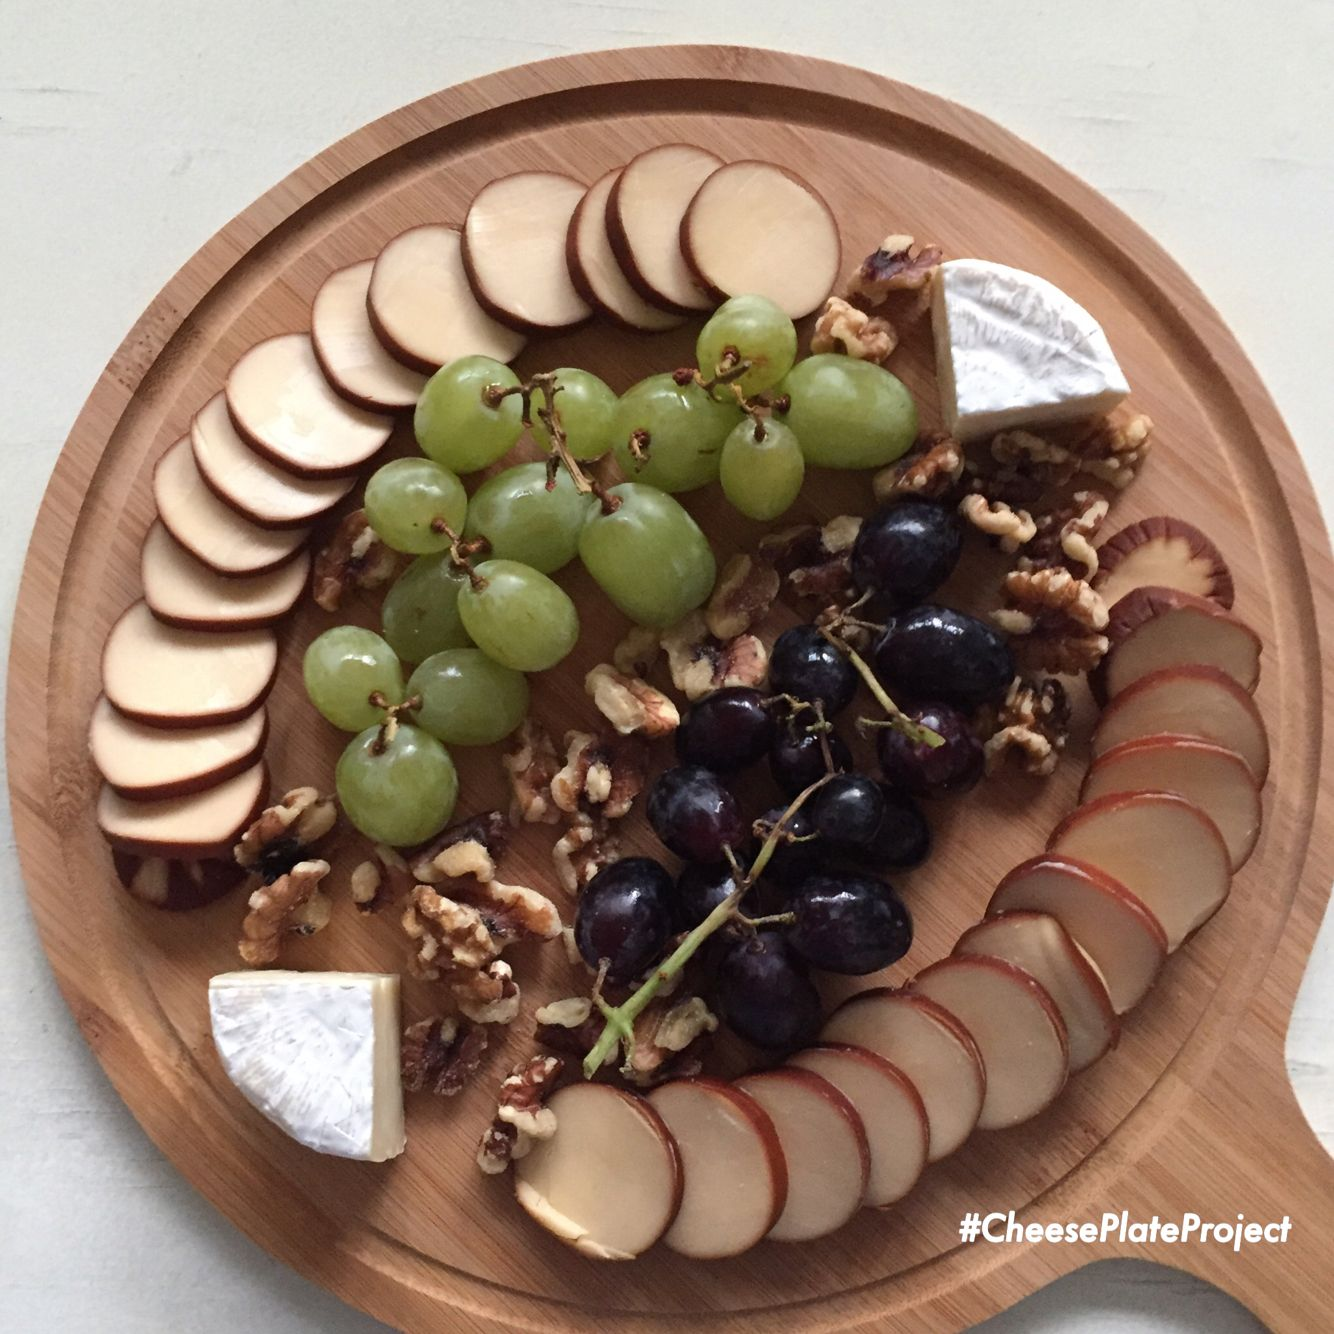 Simple but divine. #CheesePlateProject